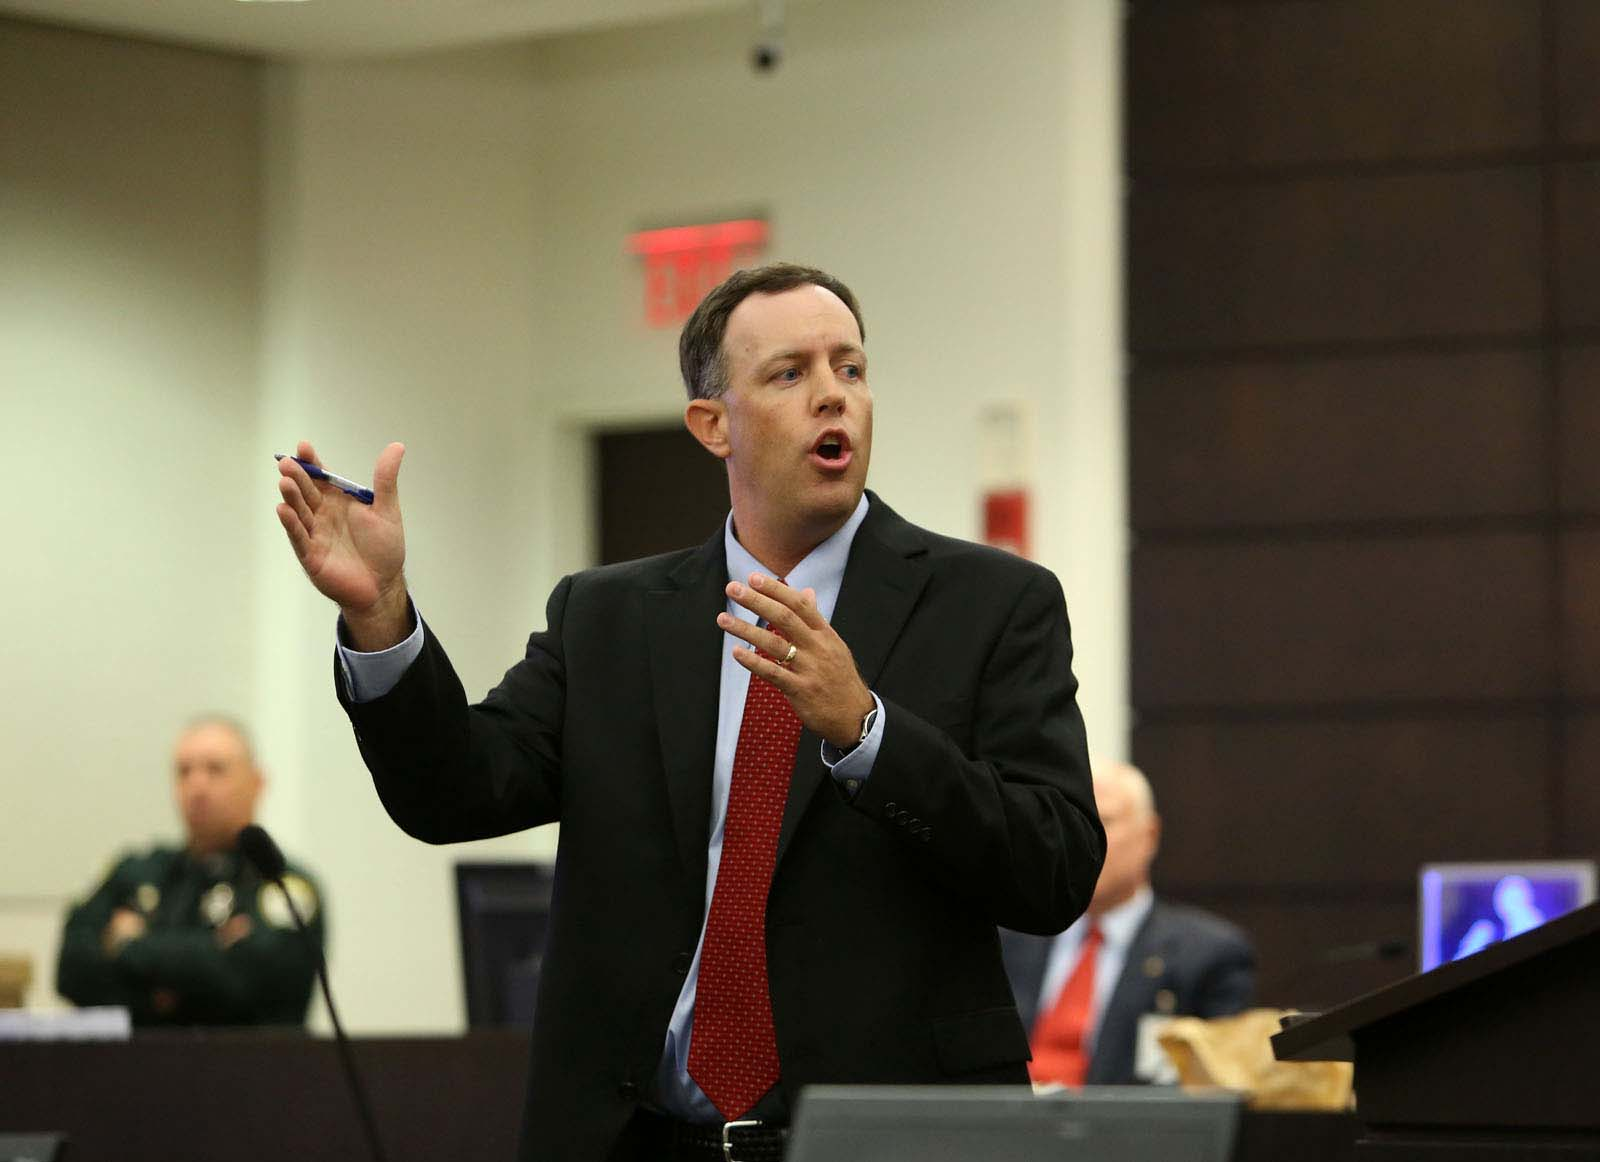 Assistant State Attorney Bill Ezzell gives his rebuttal during Pedro Bravo's murder trial in courtroom 1B of the Alachua County Criminal Justice Center Friday, August 15, 2014.  Bravo is accused of killing University of Florida student Christian Aguilar.  (Doug Finger/The Gainesville Sun/Pool)